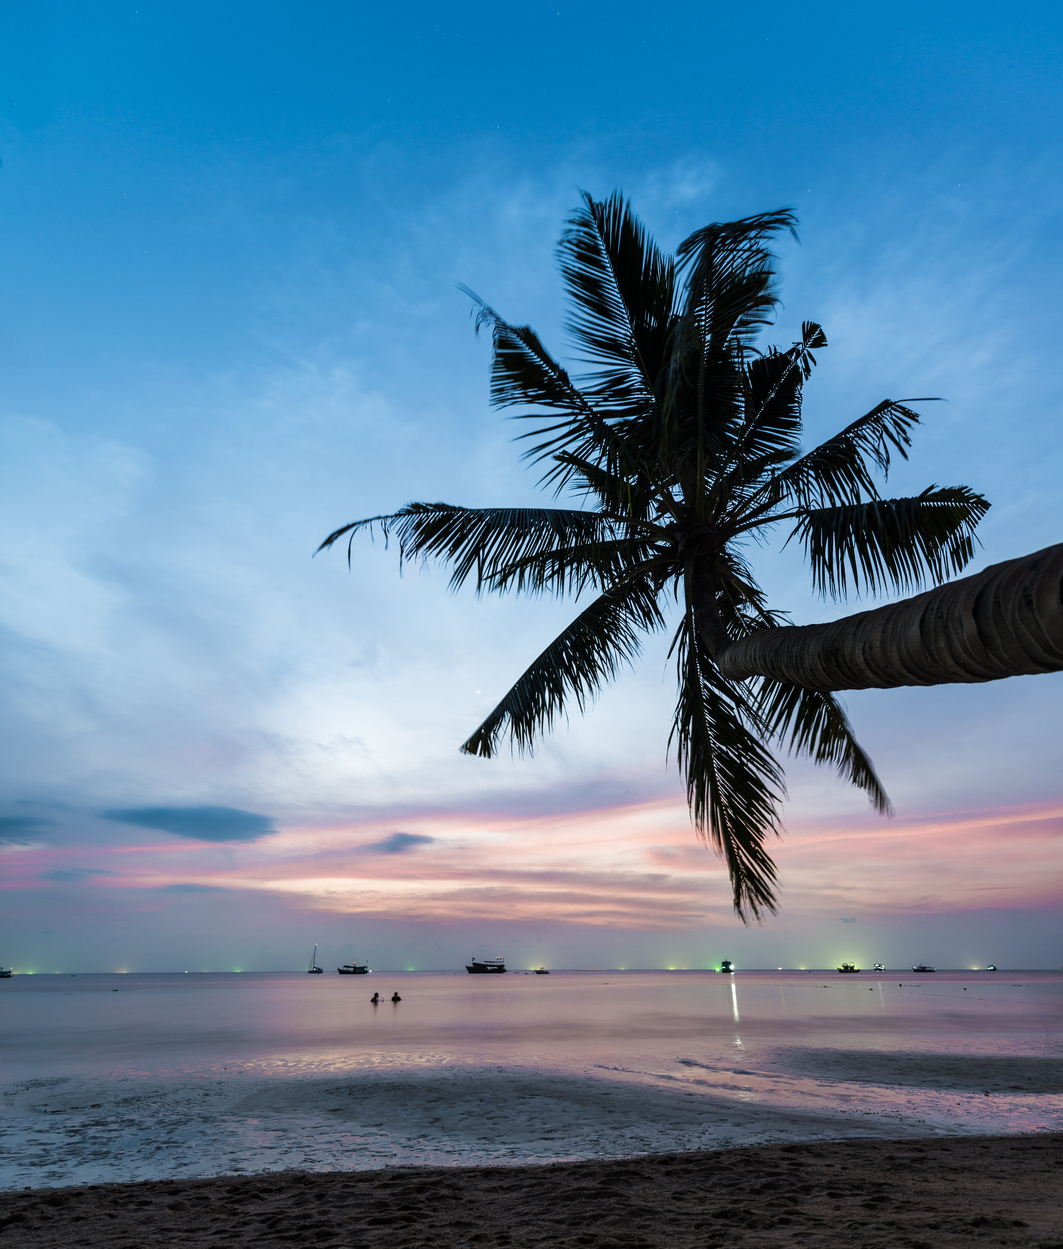 Palm tree at sunset, by the sea, South China Sea, Gulf of Thailand, Koh Tao, Thailand, Image: 266880339, License: Royalty-free, Restrictions: , Model Release: no, Credit line: Profimedia, imageBROKER